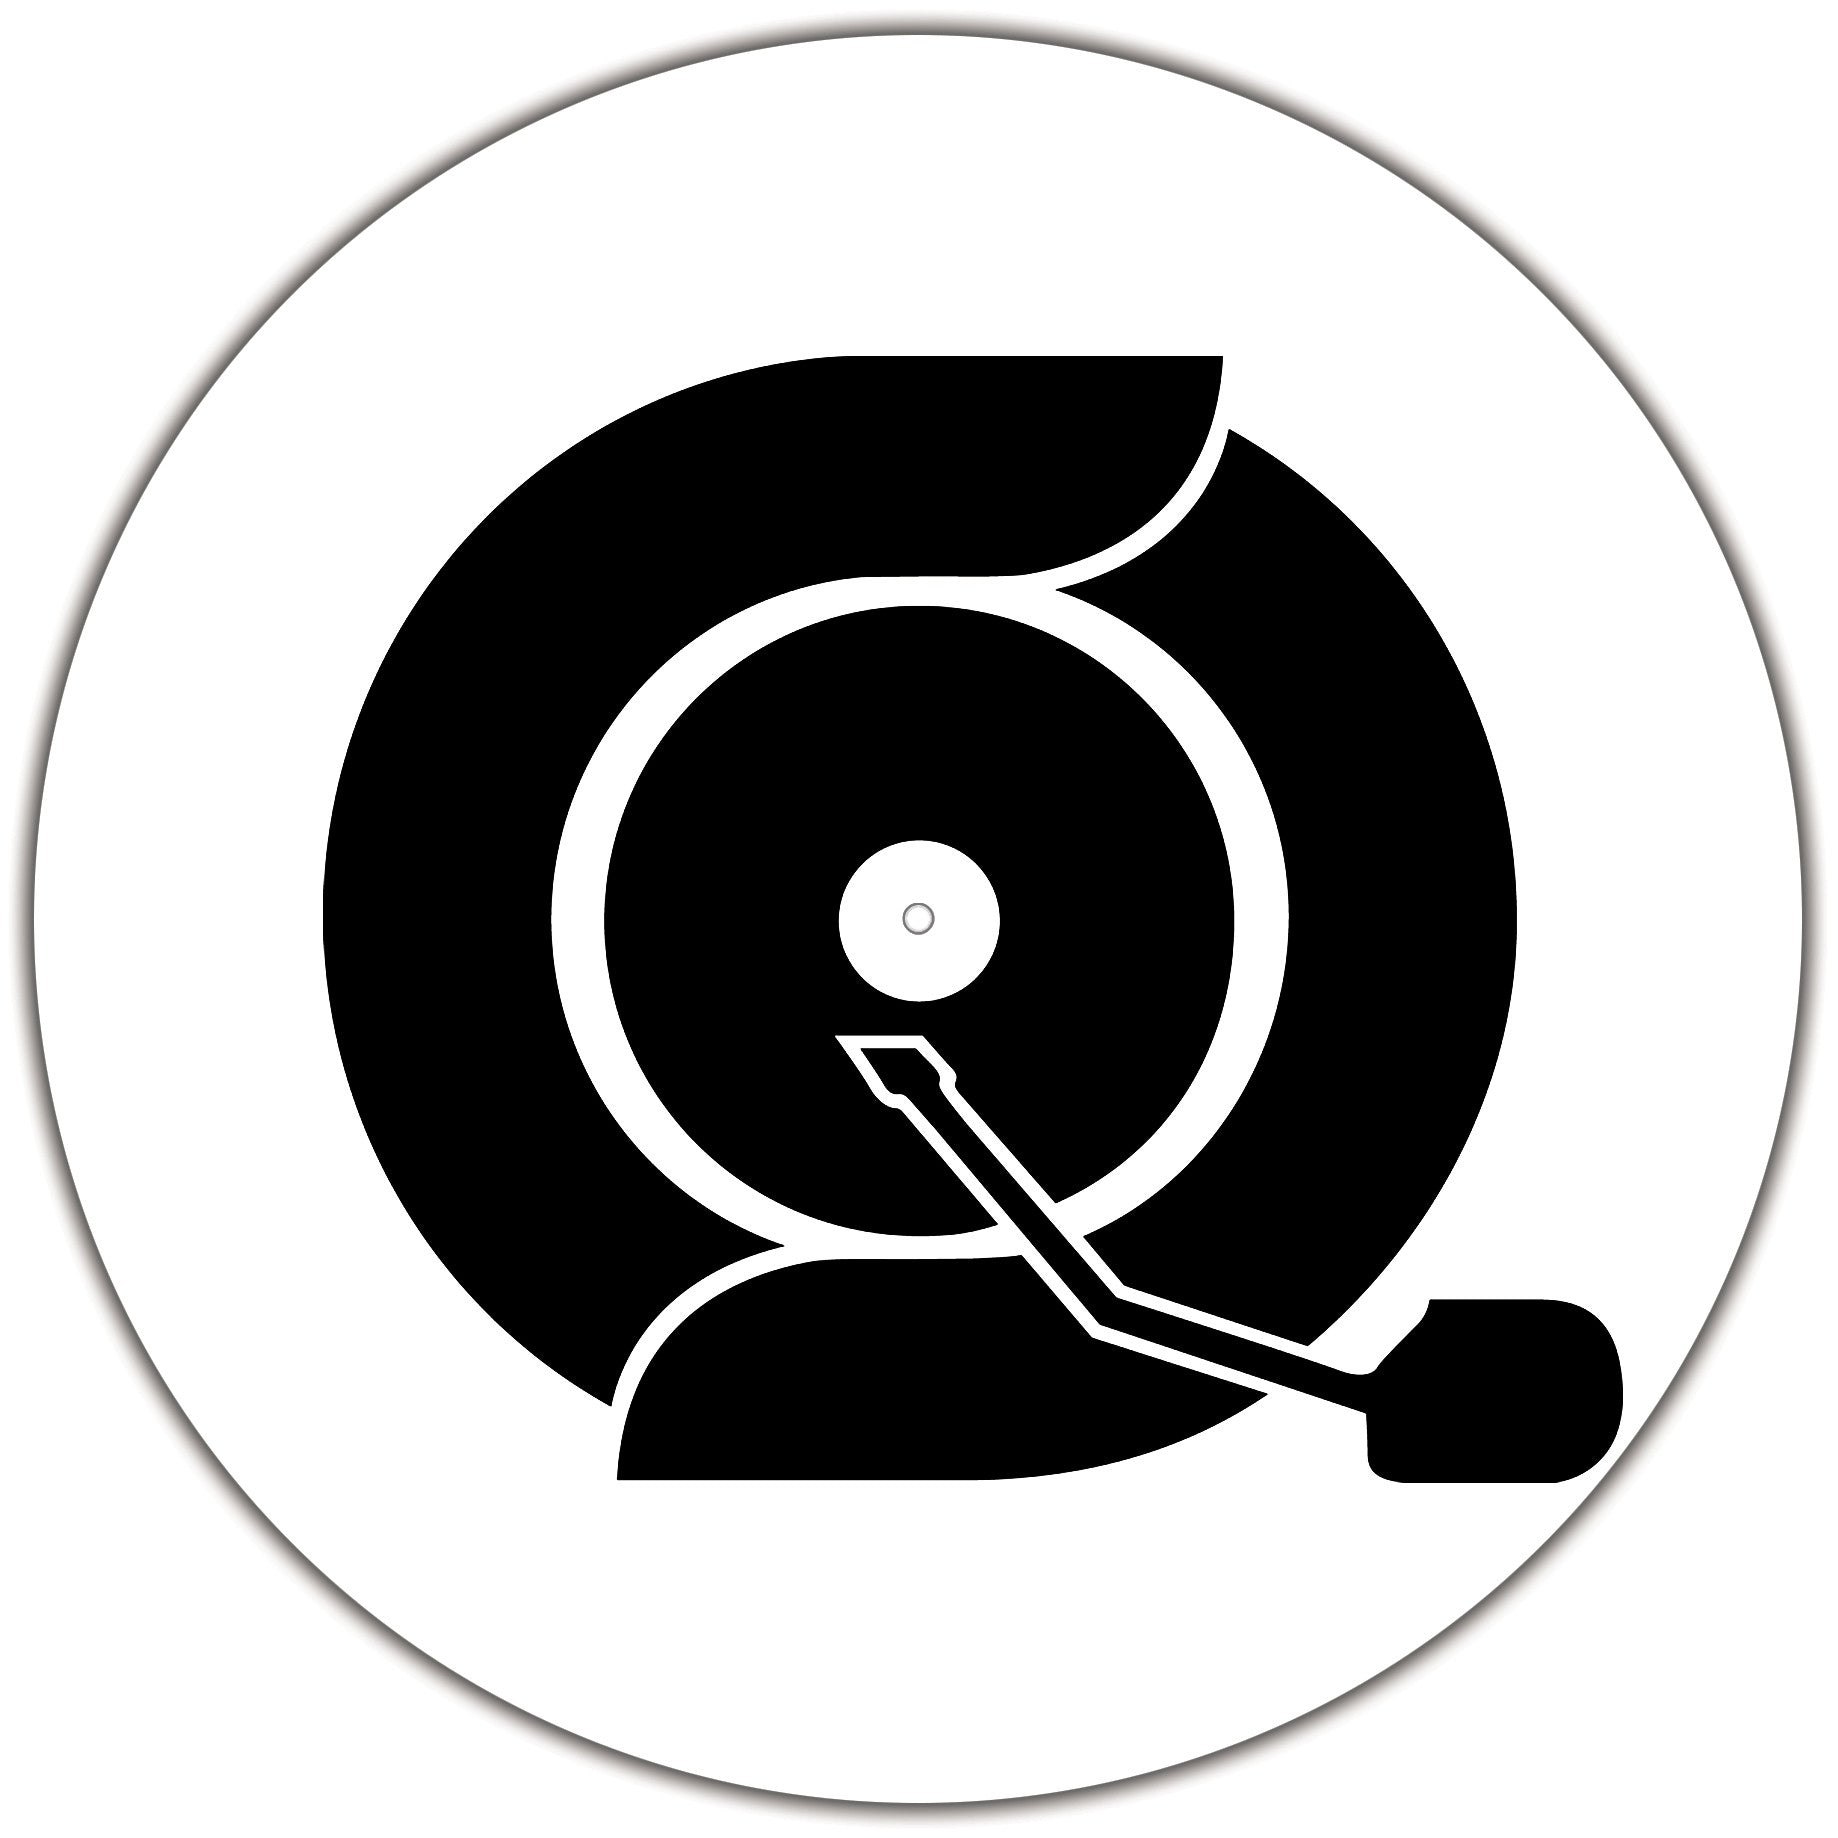 Turntable Slipmats (Black & White) - Crate Connect Clothing - DJ Clothing - Turntable Clothing